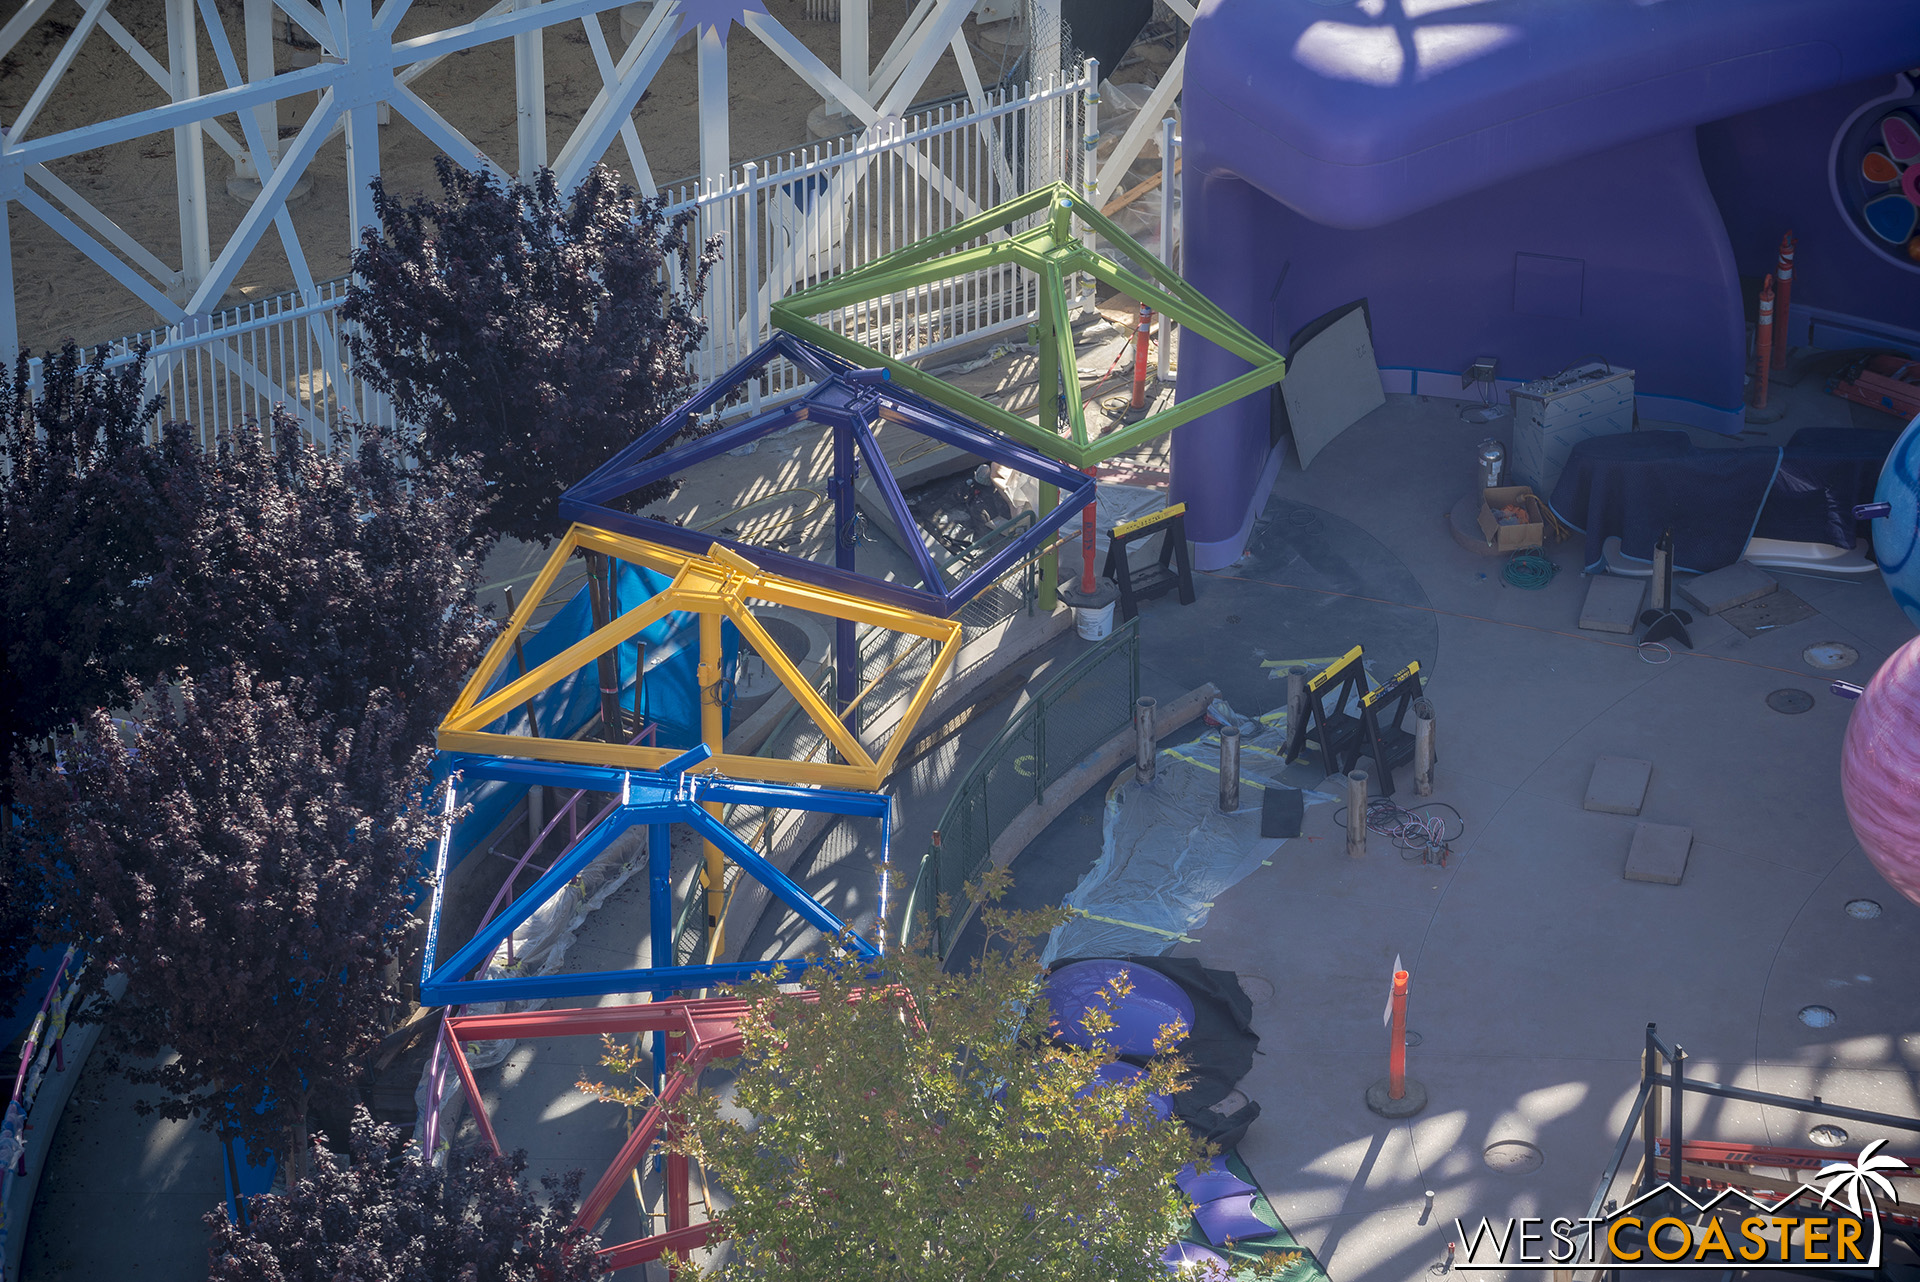 The canopy structures have gotten painted in their colorful pattern too.